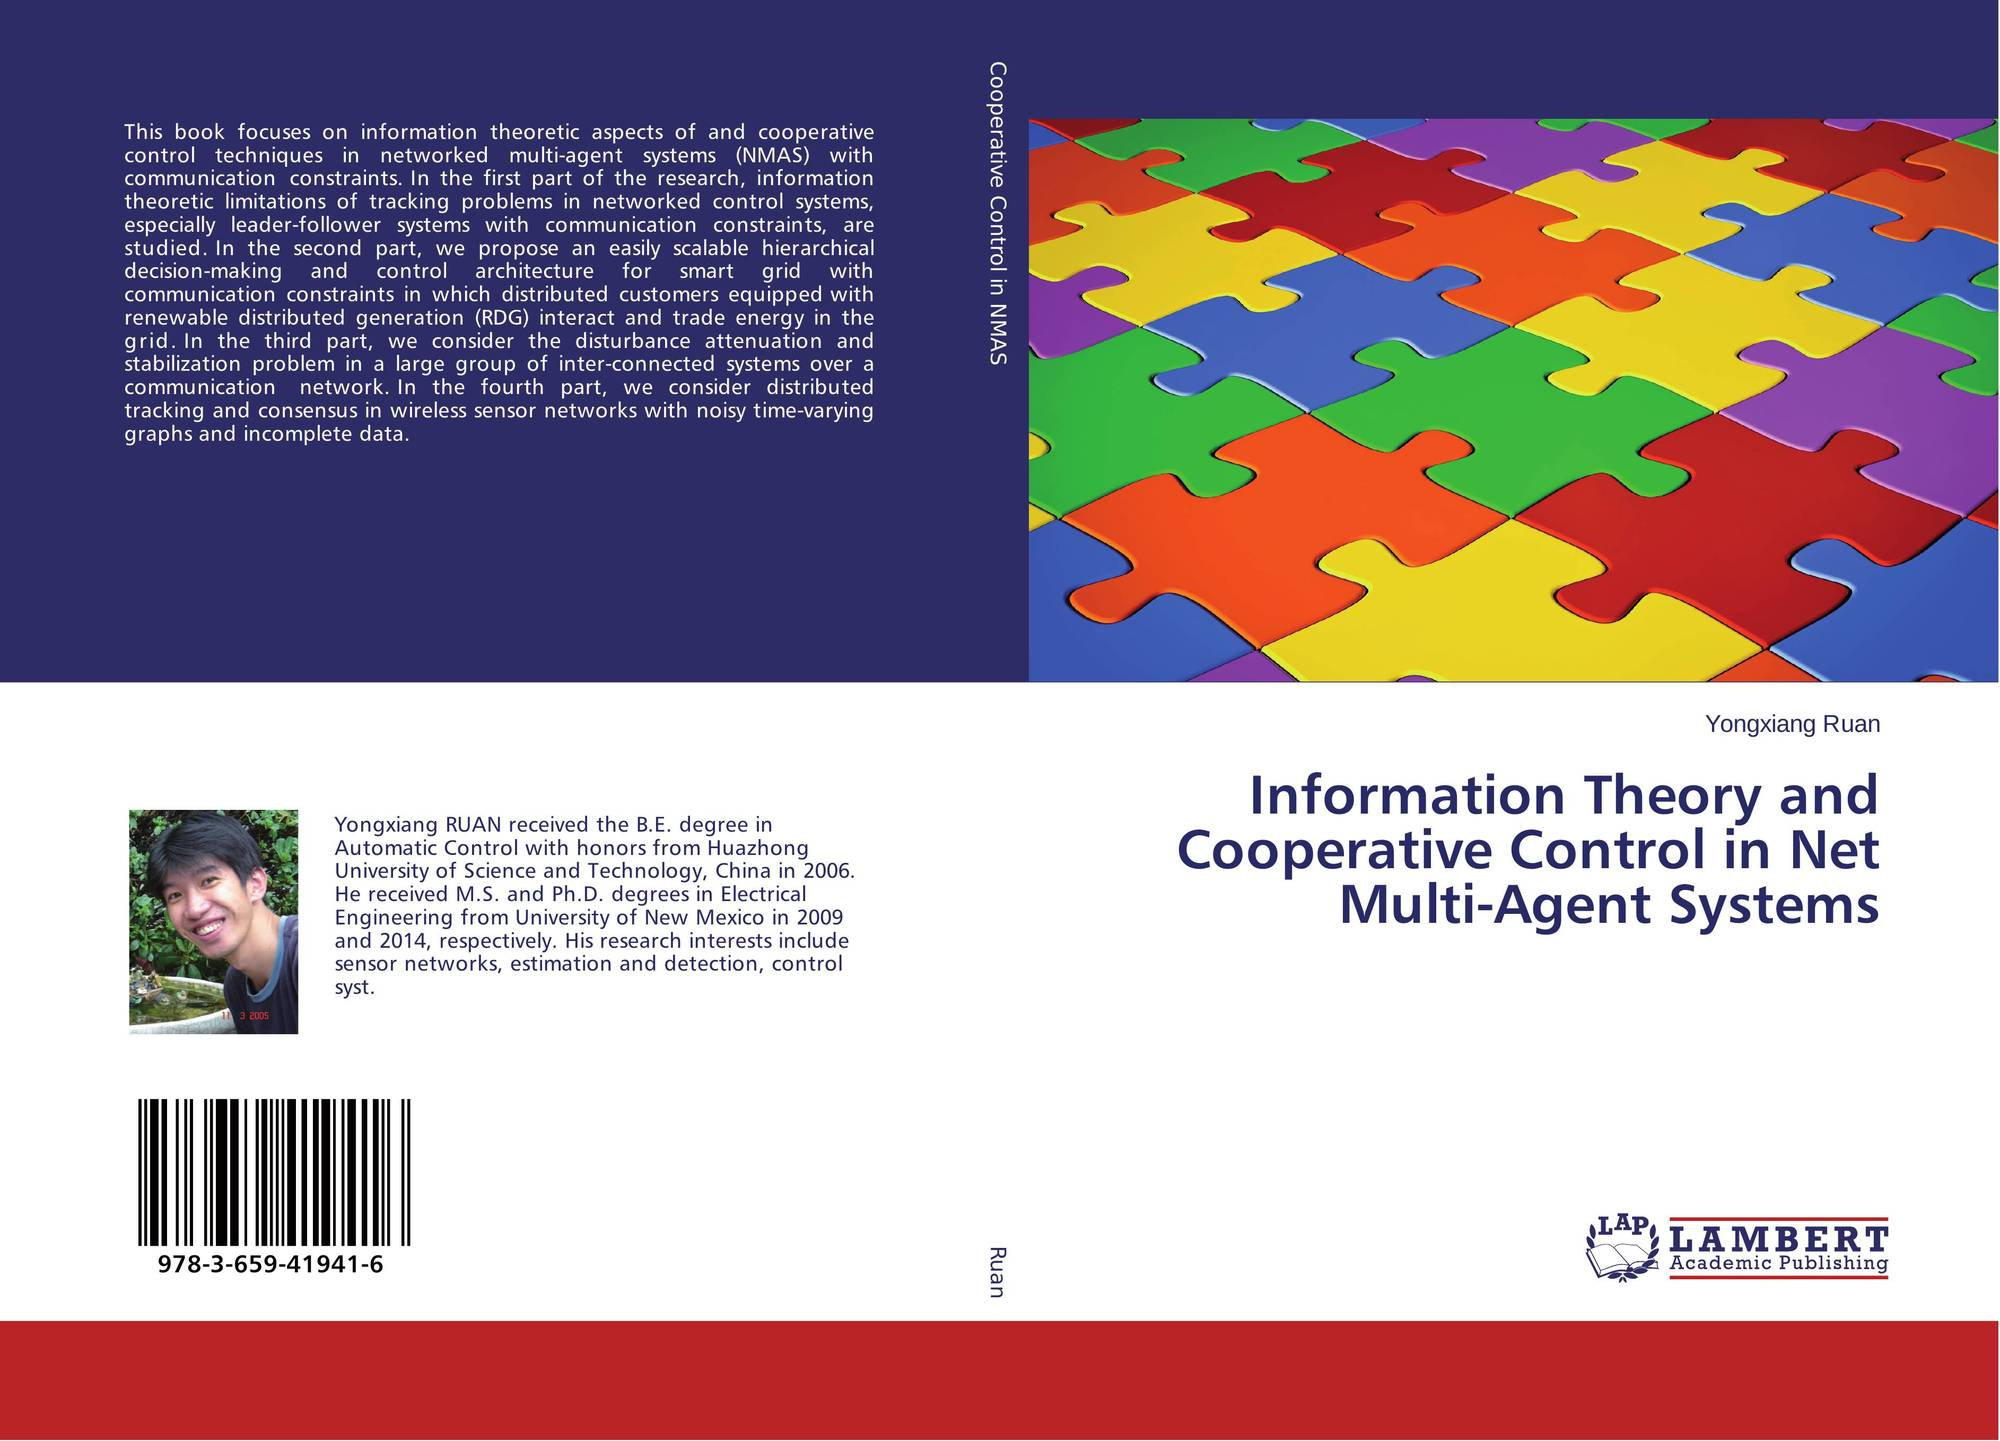 the usefulness of information systems in a An information system (is) is an organized system for the collection, organization, storage and communication of informationmore specifically, it is the study of complementary networks that people and organizations use to collect, filter, process, create and distribute data.